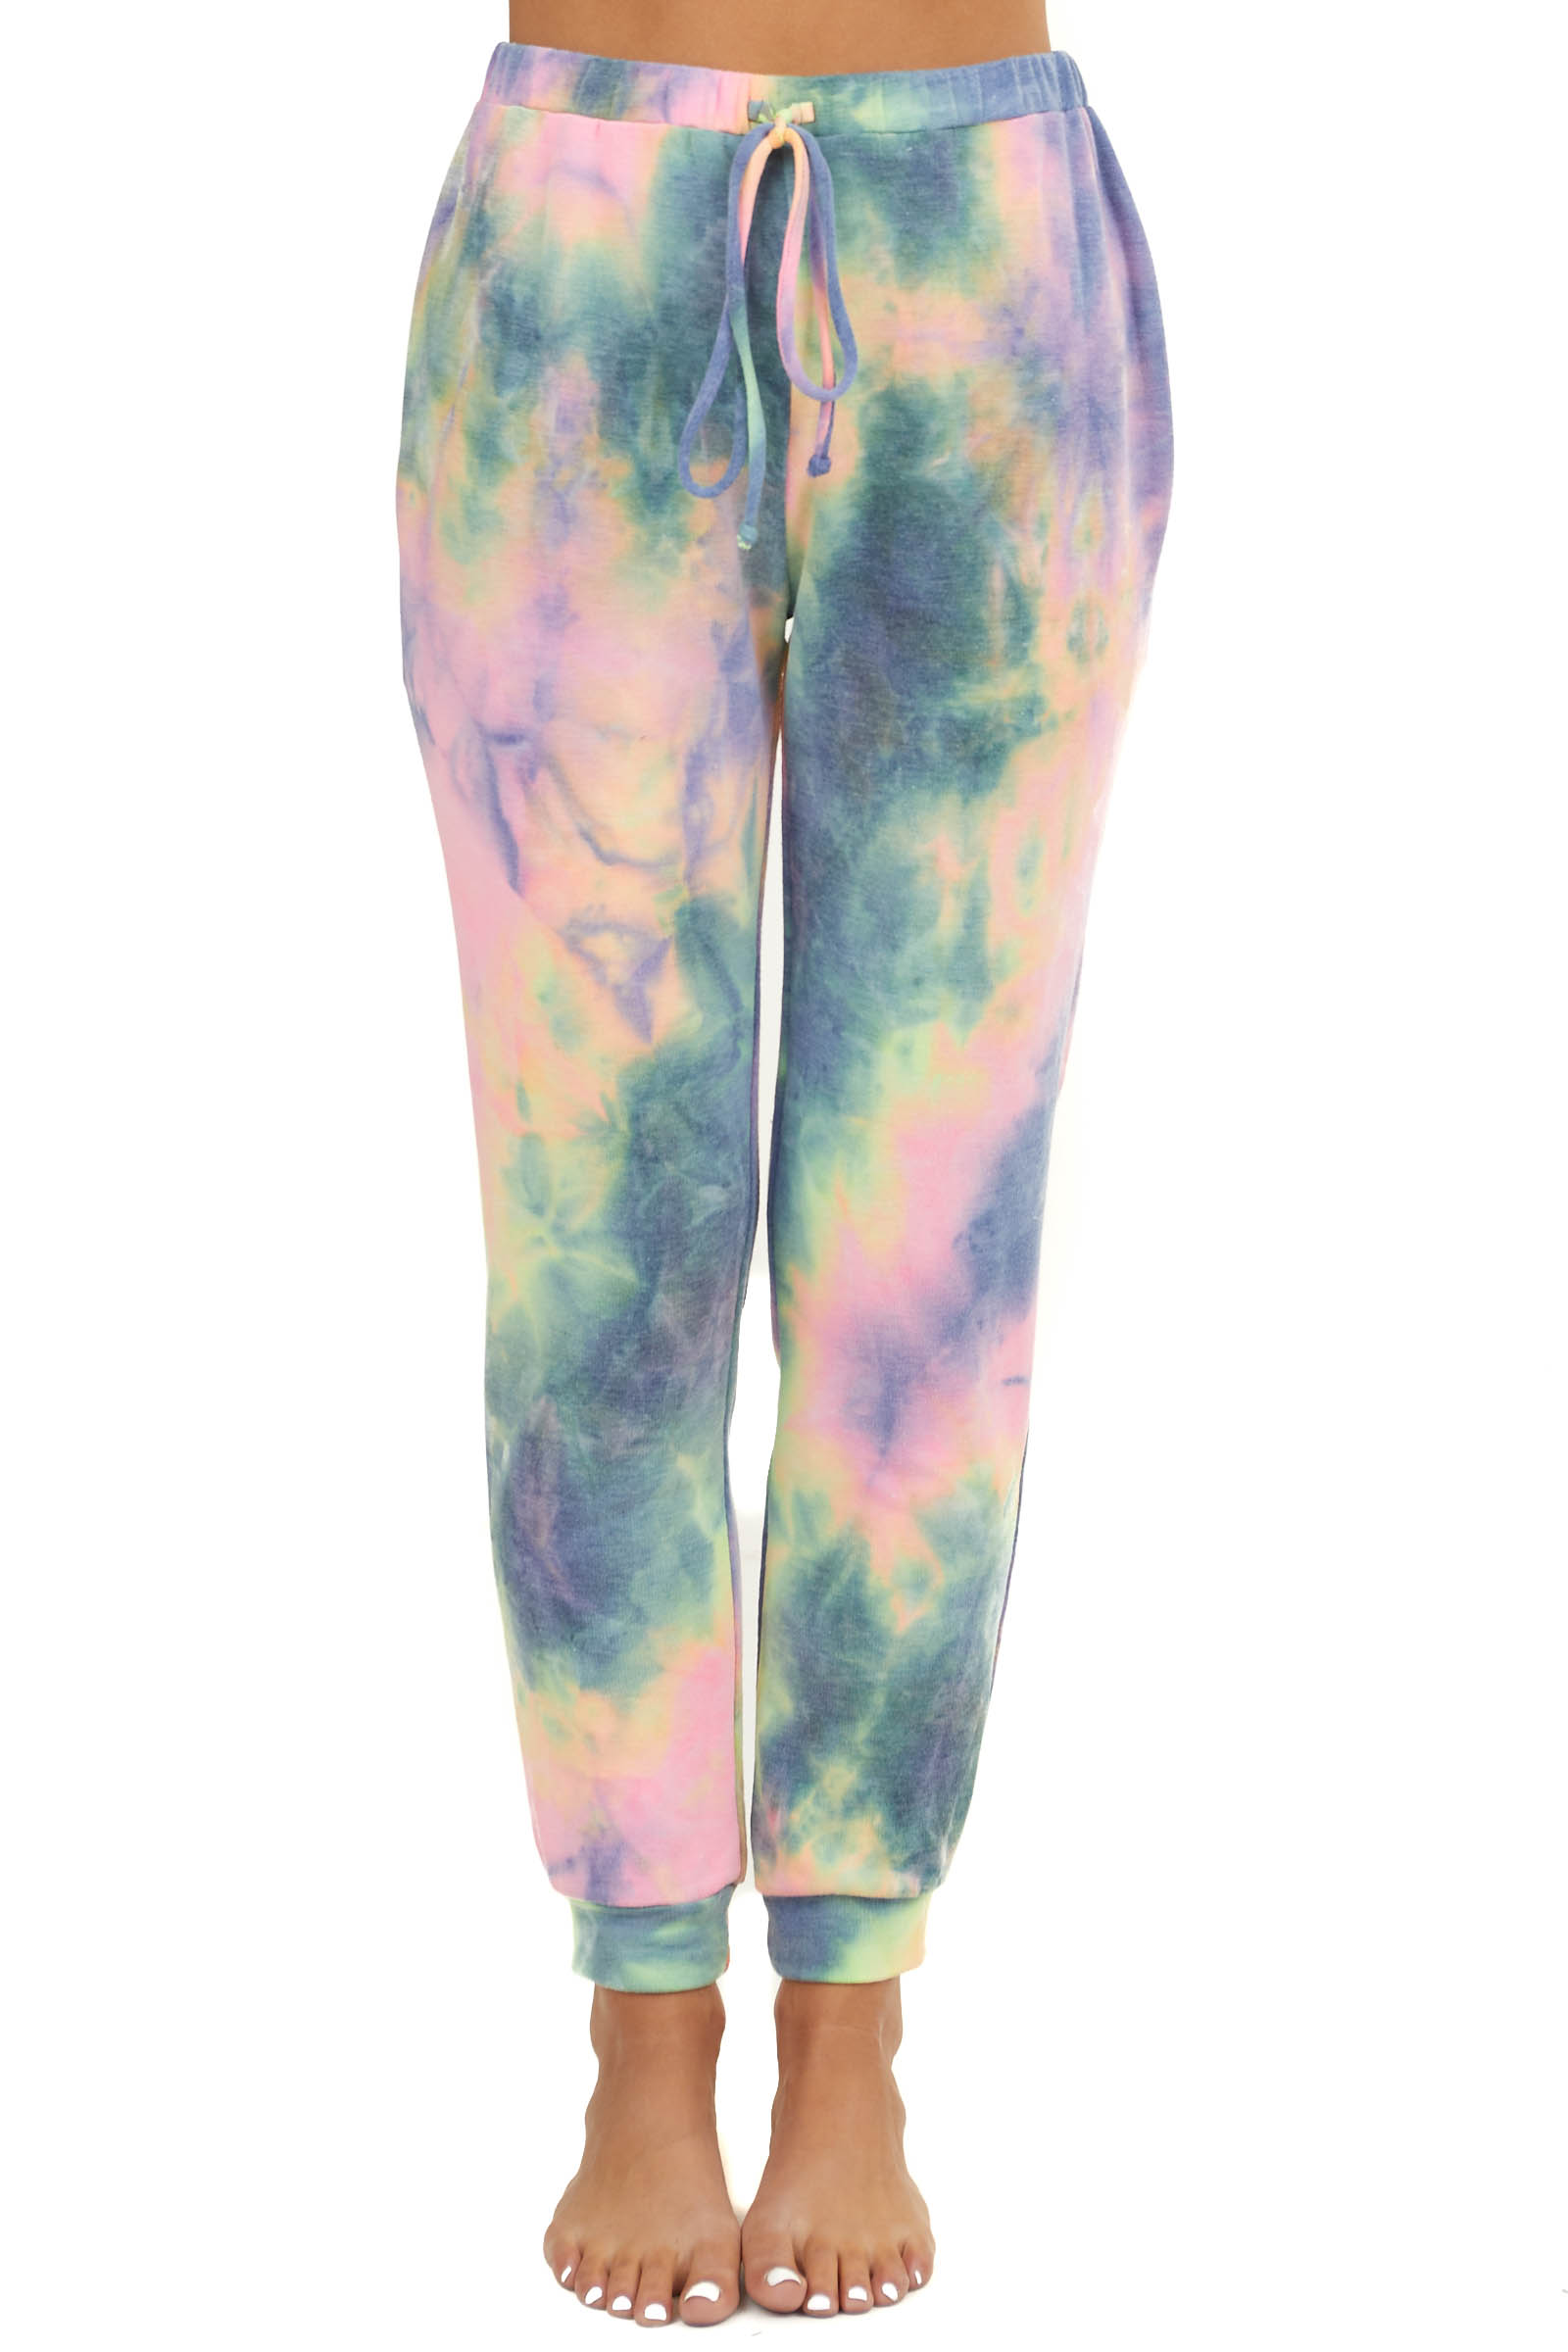 Rainbow Tie Dye Knit Joggers with Pockets and Waist Tie